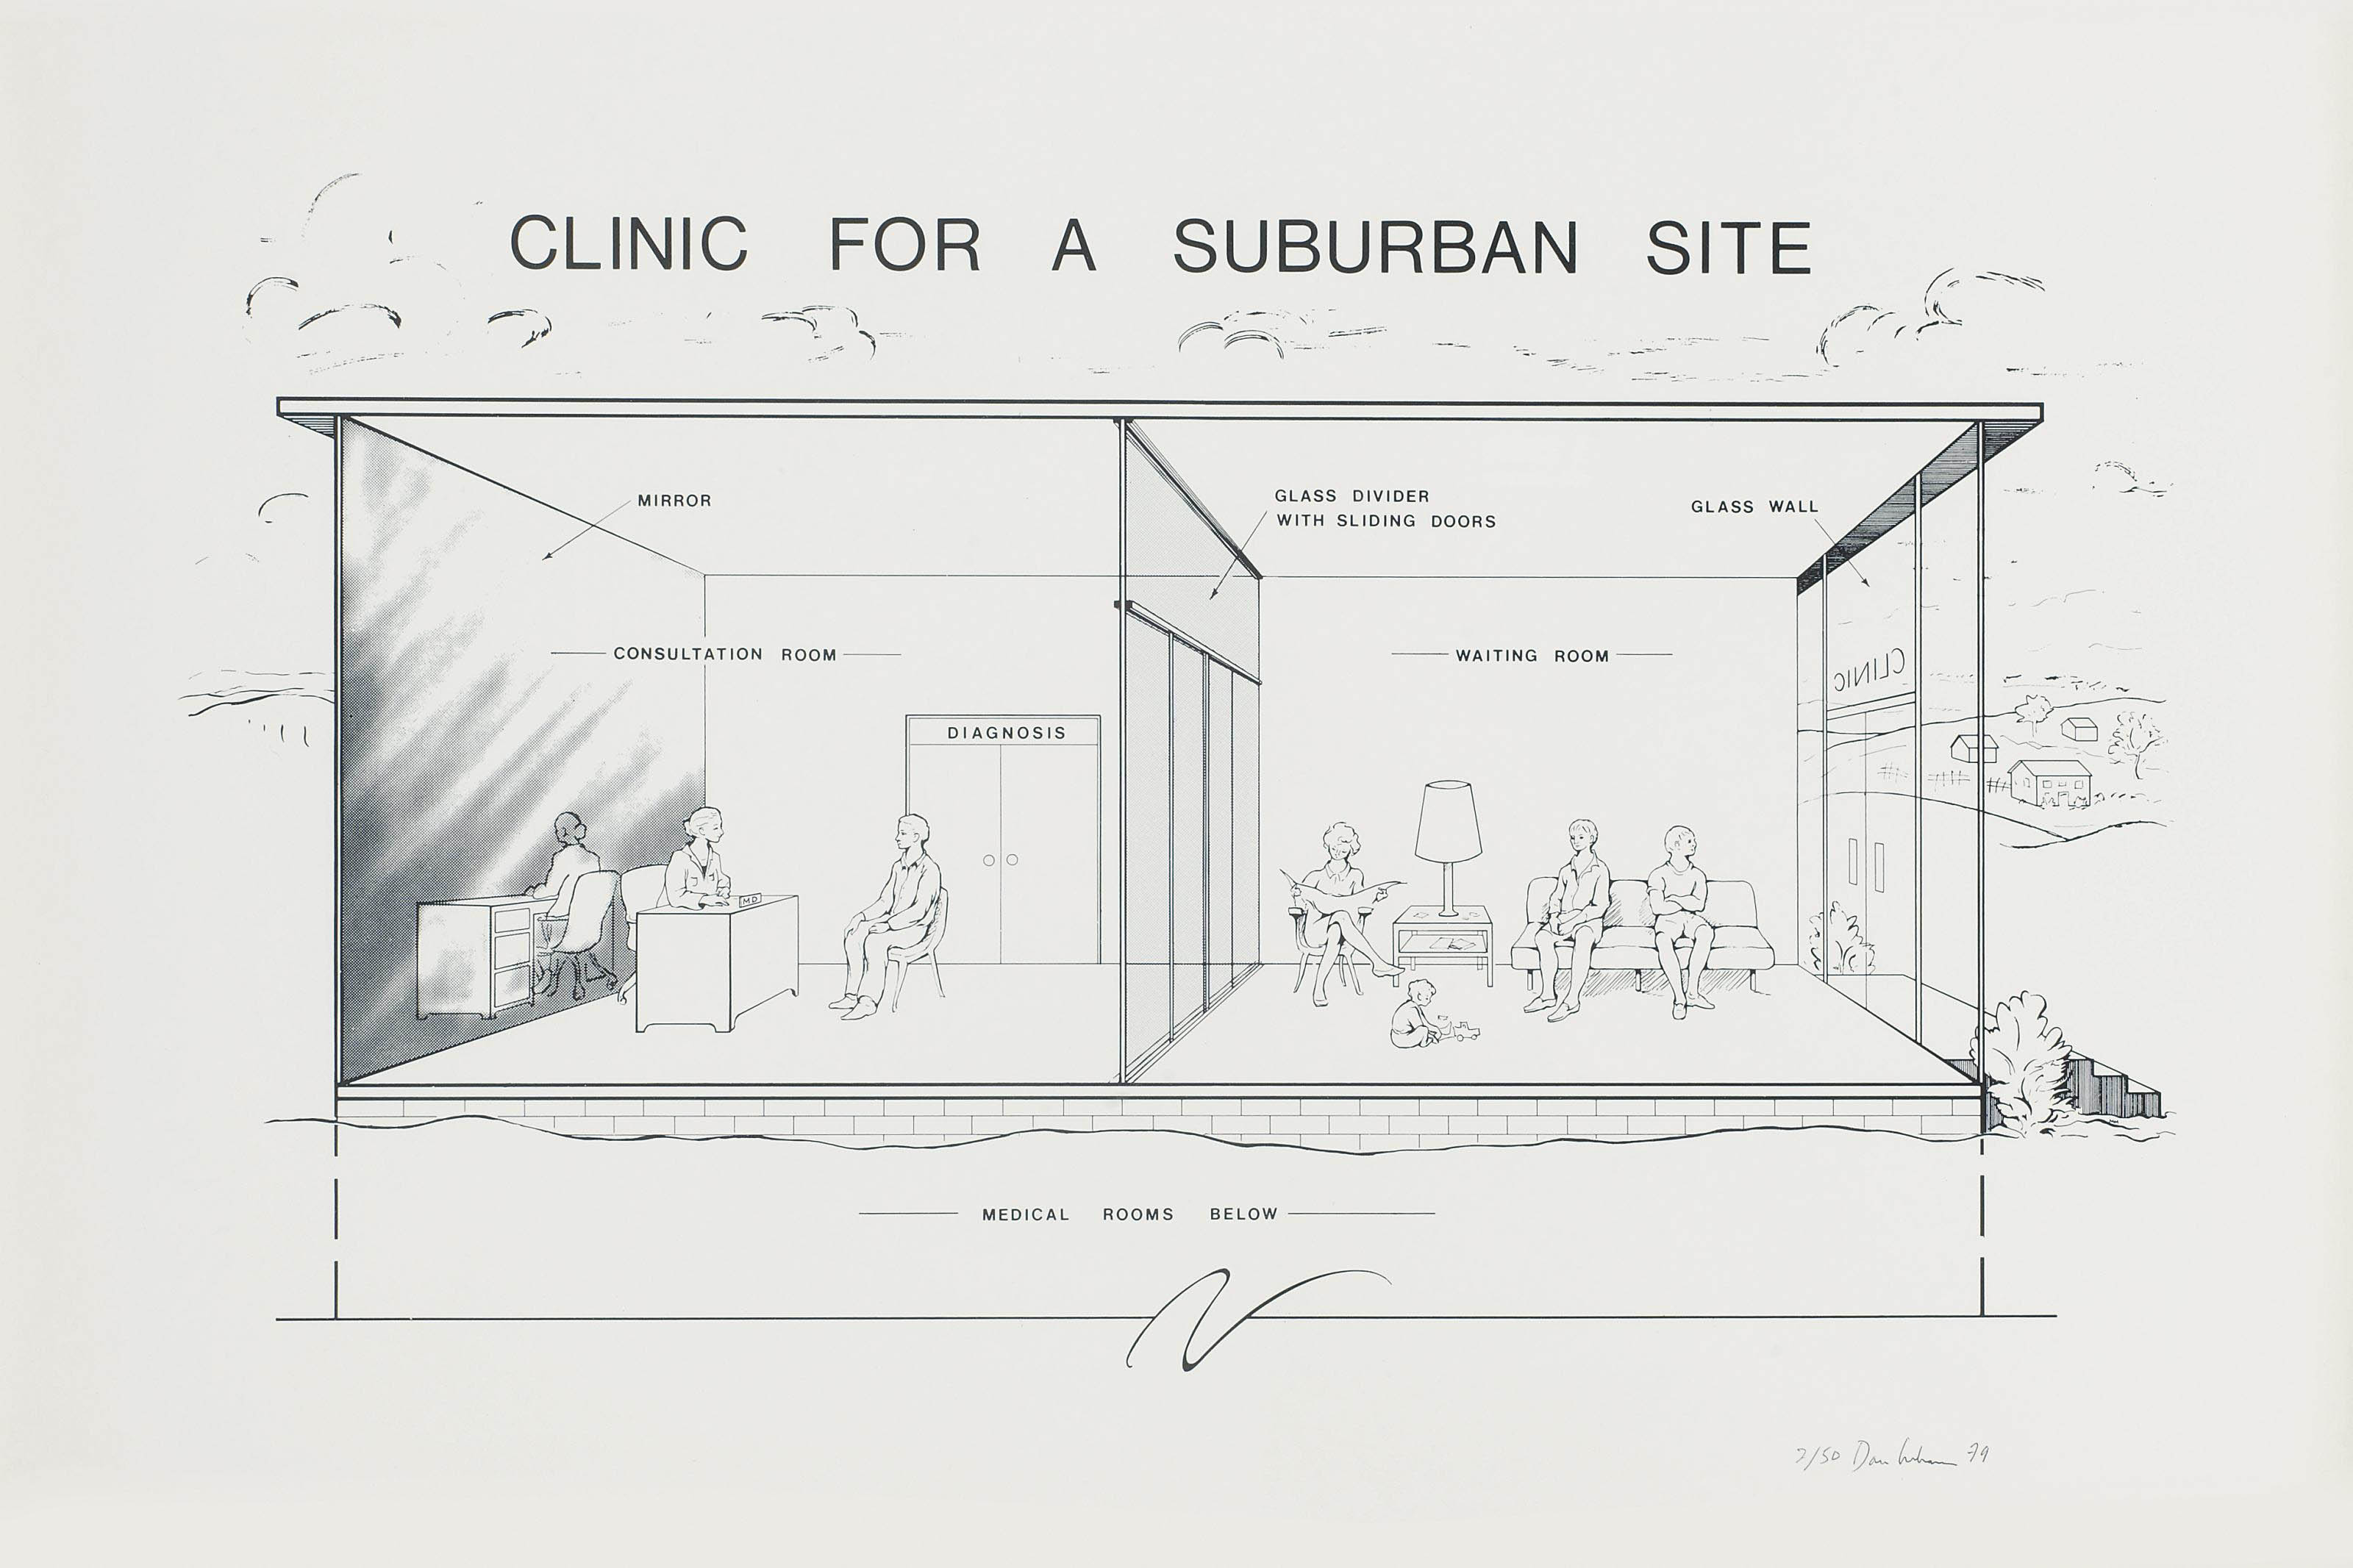 Clinic for a Suburban Site